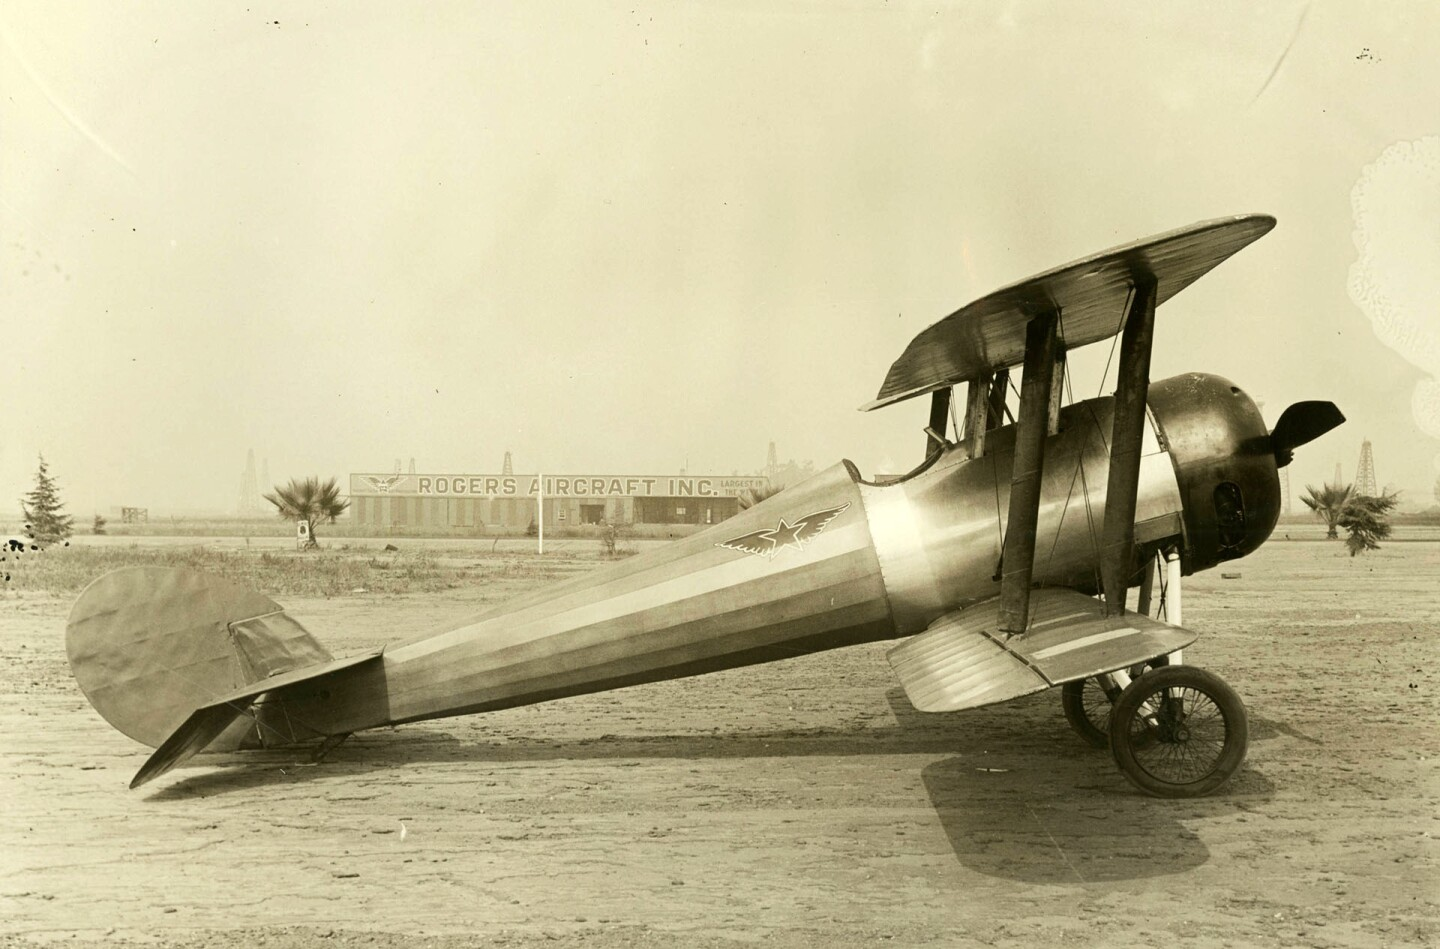 Airplane parked at Rogers Airport with Rogers Aircraft Incorporated building in the background, ca.1922